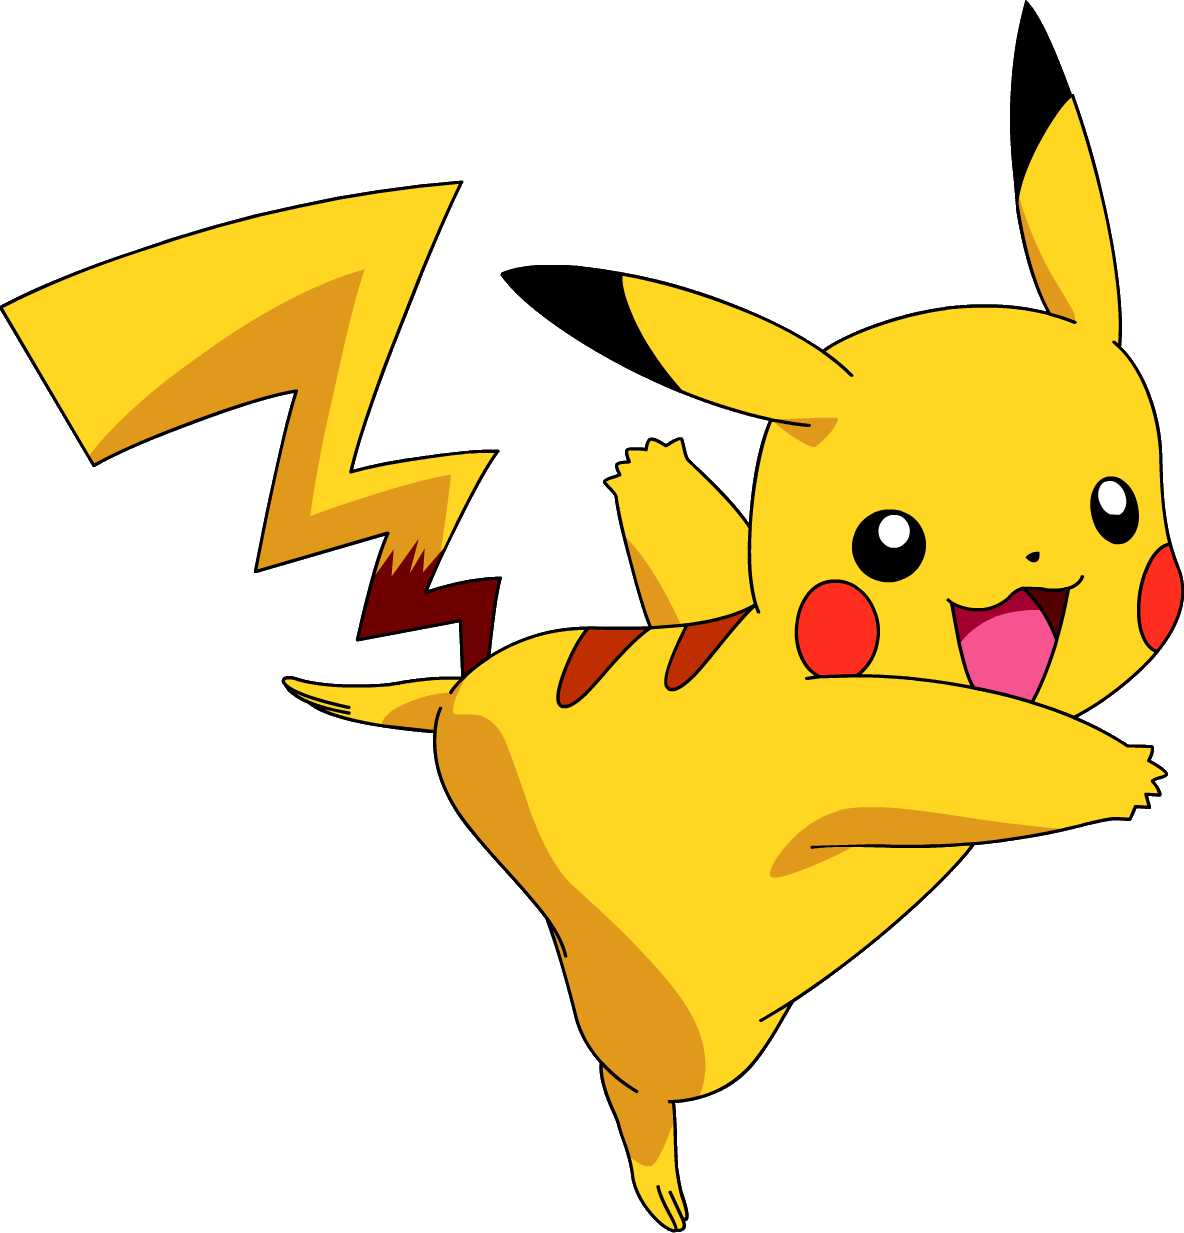 Pikachu clipart high resolution. Pokemon png images transparent